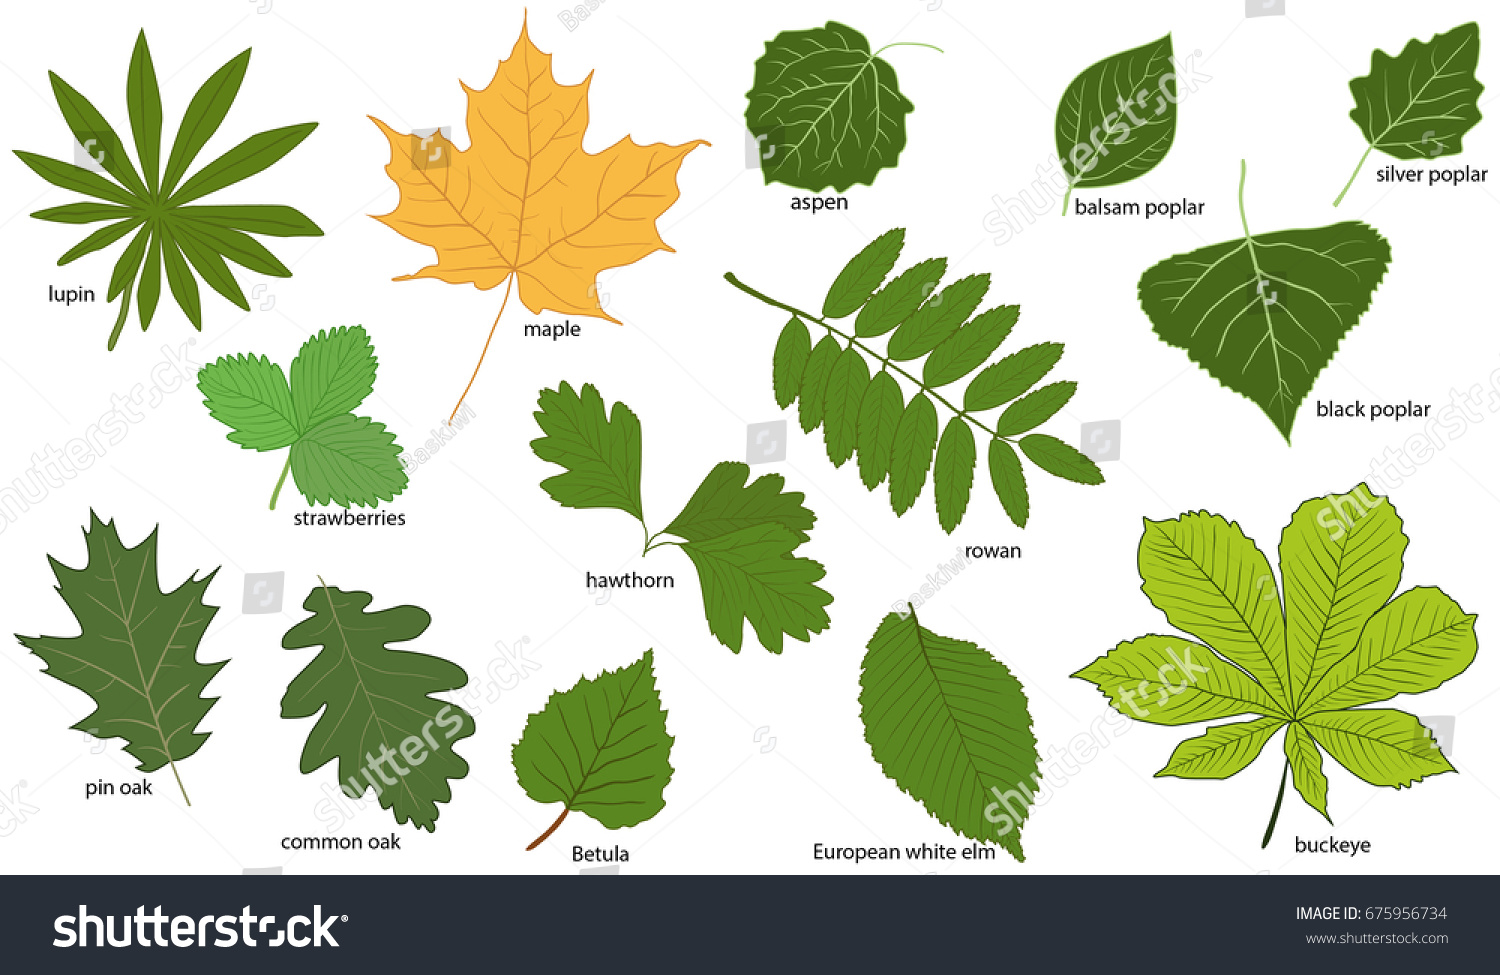 Tree leaf names pictures Leafsnap is a New App to Identify Trees TreeHugger